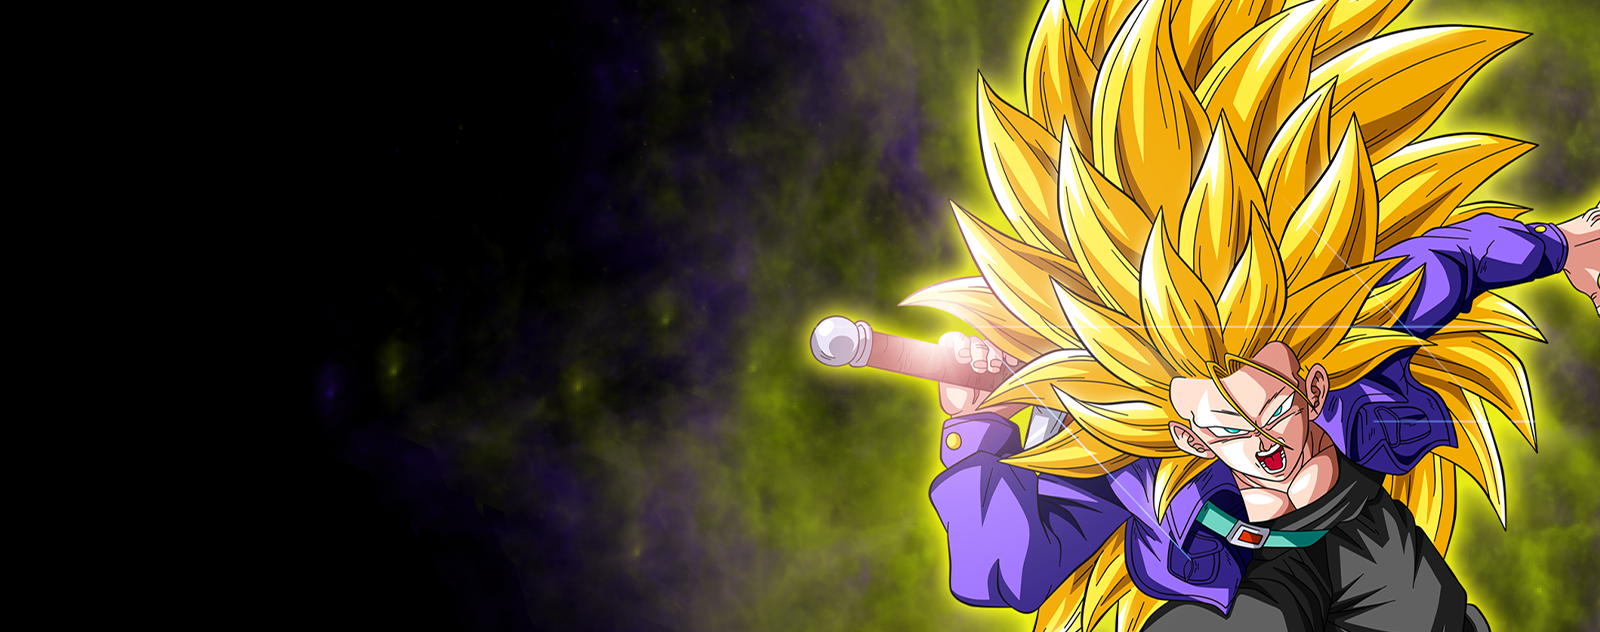 Trunks du Futur SSJ3